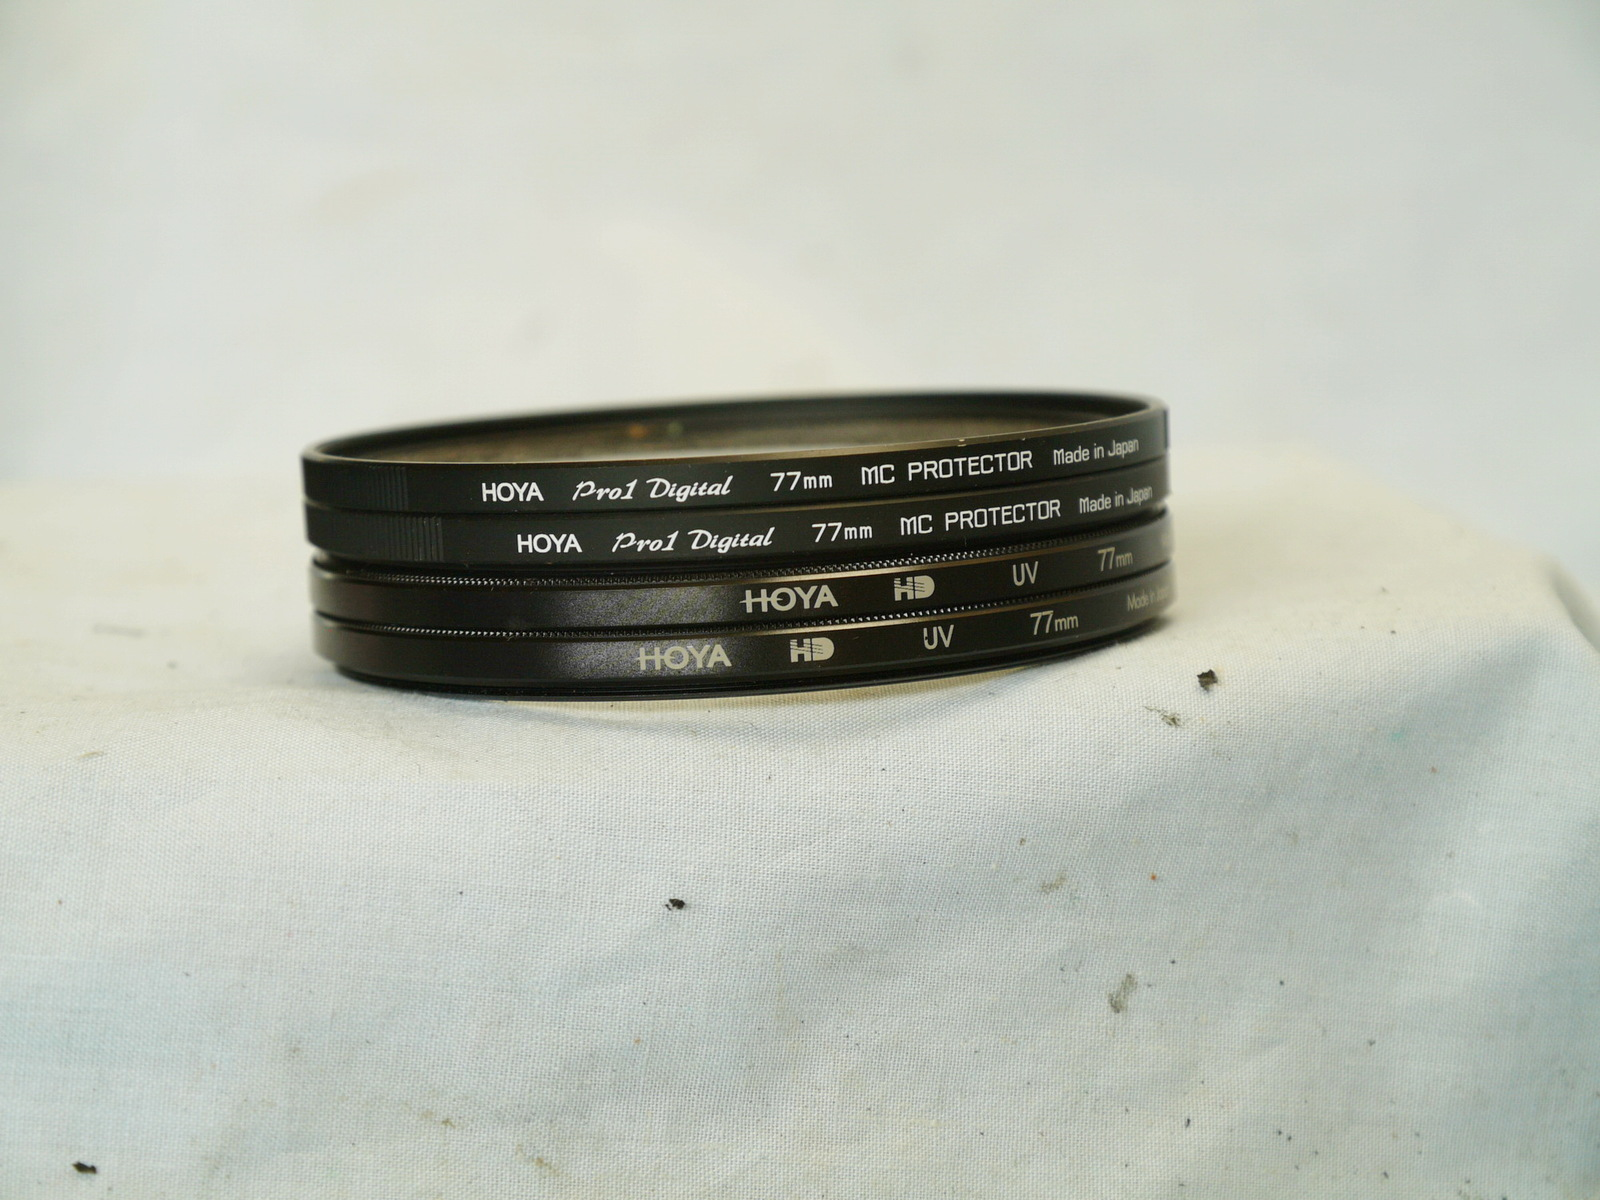 Hoya 77mm Professional Camera Filter x 4 - Nice- Great Lens Protection - - $30.00